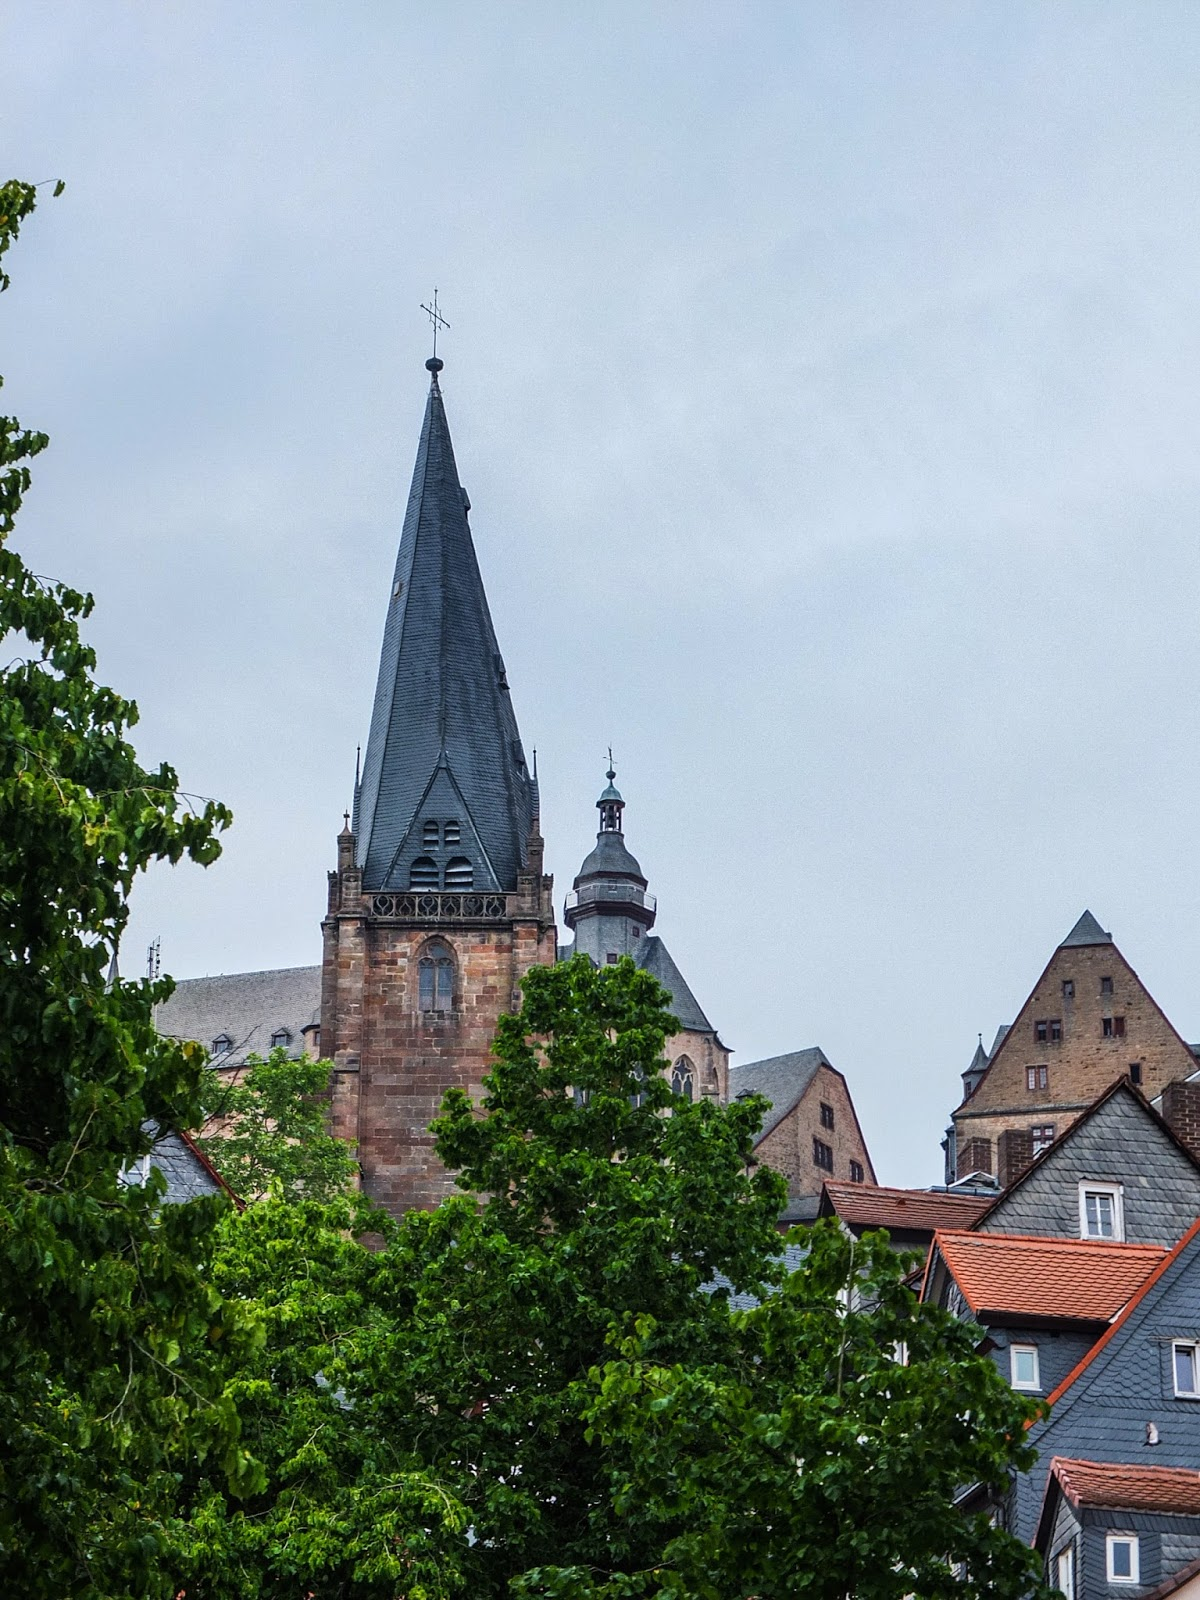 View of the St. Marienkirche church over the trees and buildings in Marburg.